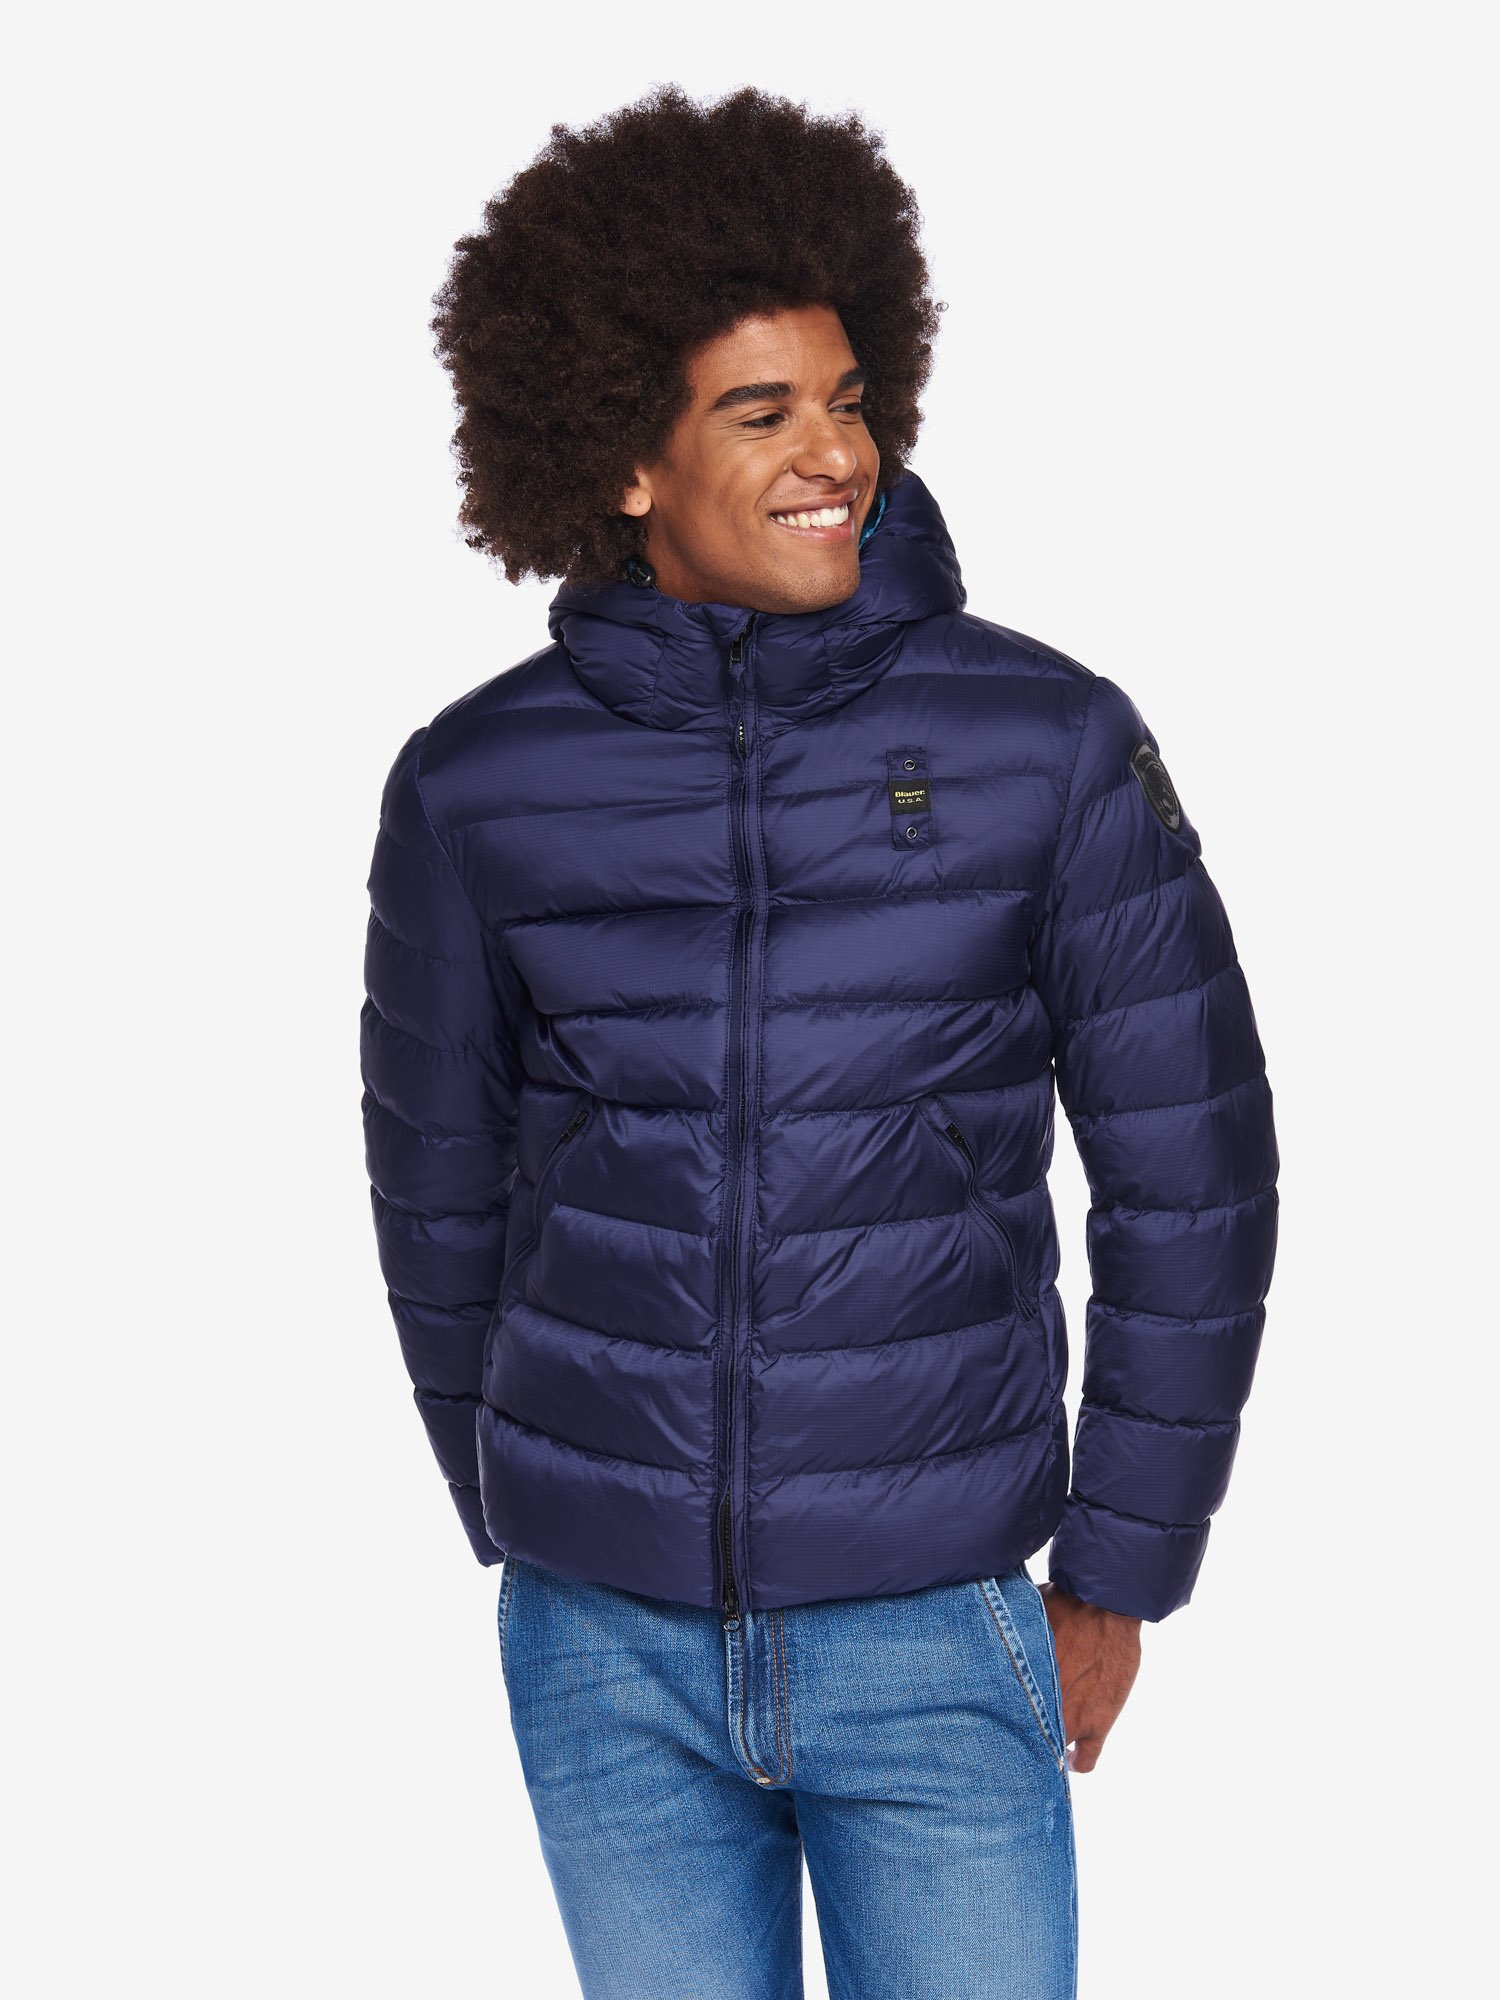 PALMER BIO JACKET WITH HOOD - Blauer